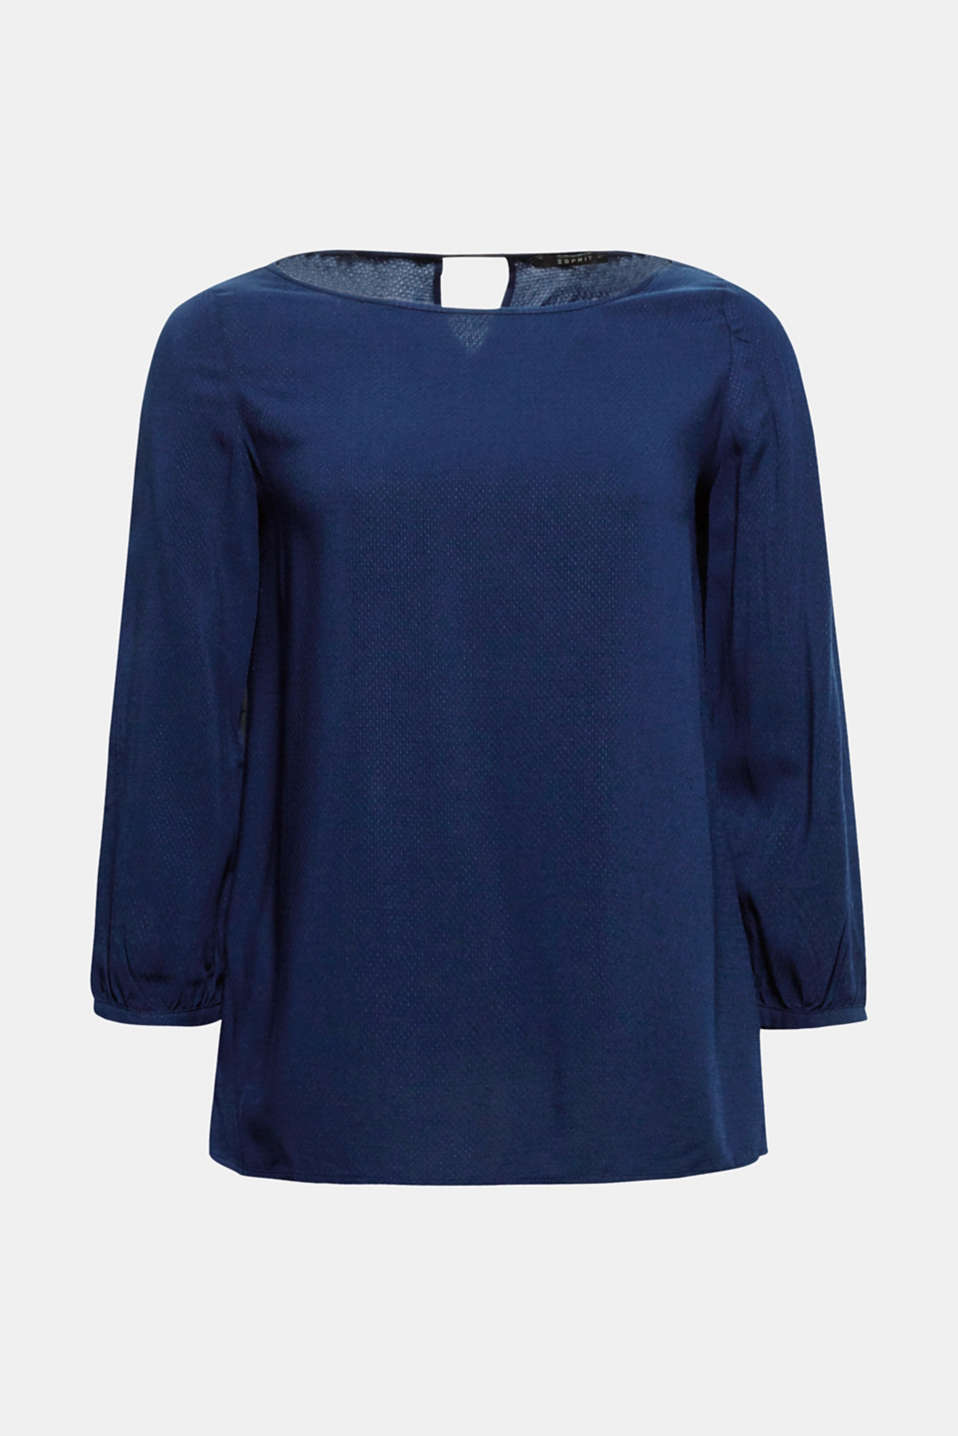 Your spring companion: basic and flowing textured blouse with a cut-out at the back and three-quarter length sleeves!